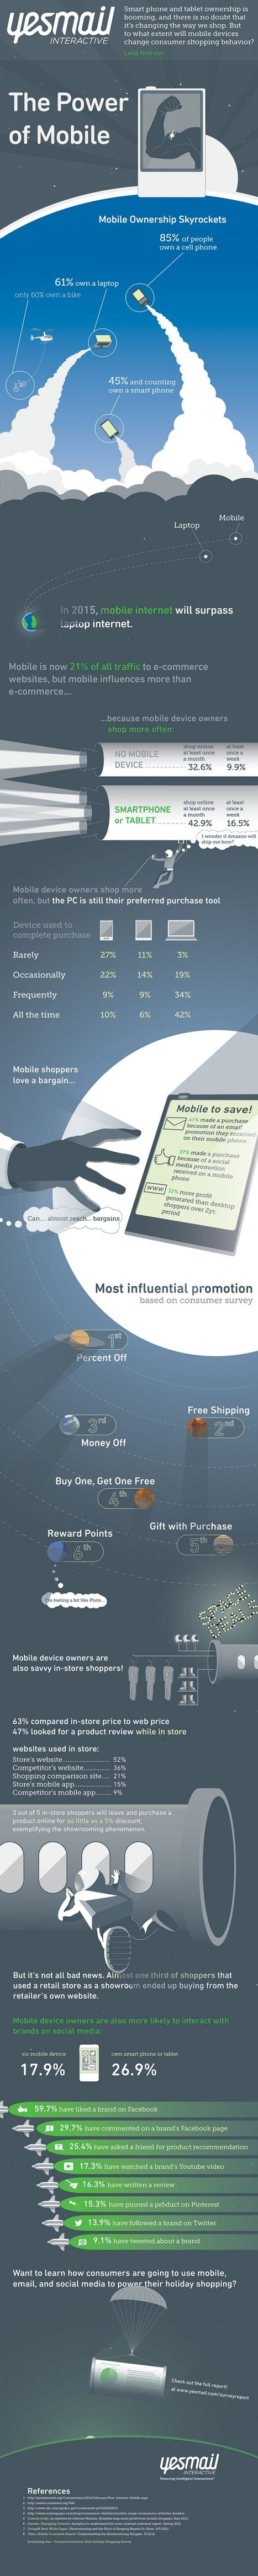 Mobile Usage Continues To Skyrocket [INFOGRAPHIC] - AllTwitter | Better know and better use Social Media today (facebook, twitter...) | Scoop.it